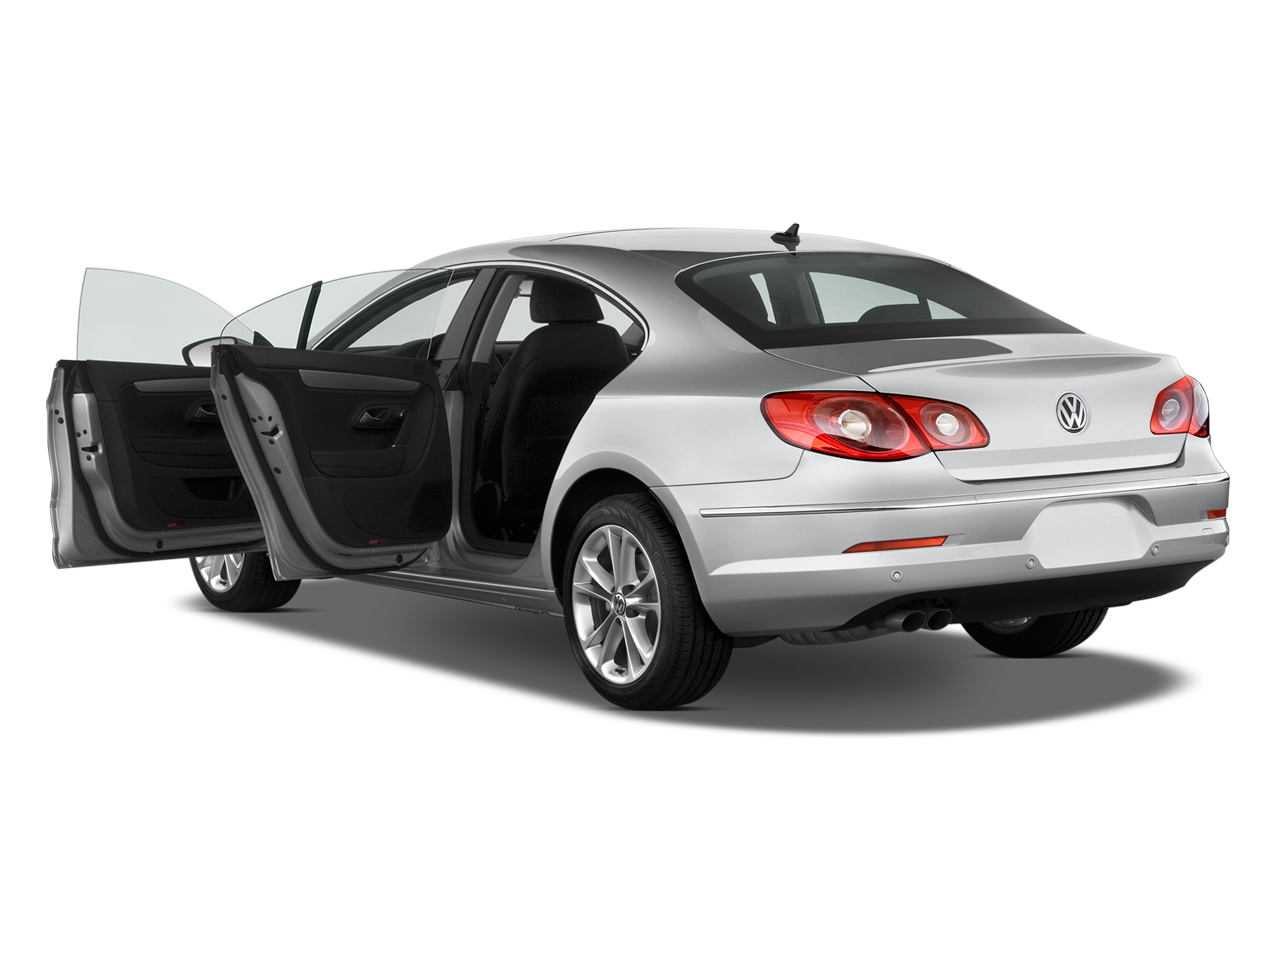 2009 volkswagen cc sport volkswagen midsize sedan review. Black Bedroom Furniture Sets. Home Design Ideas